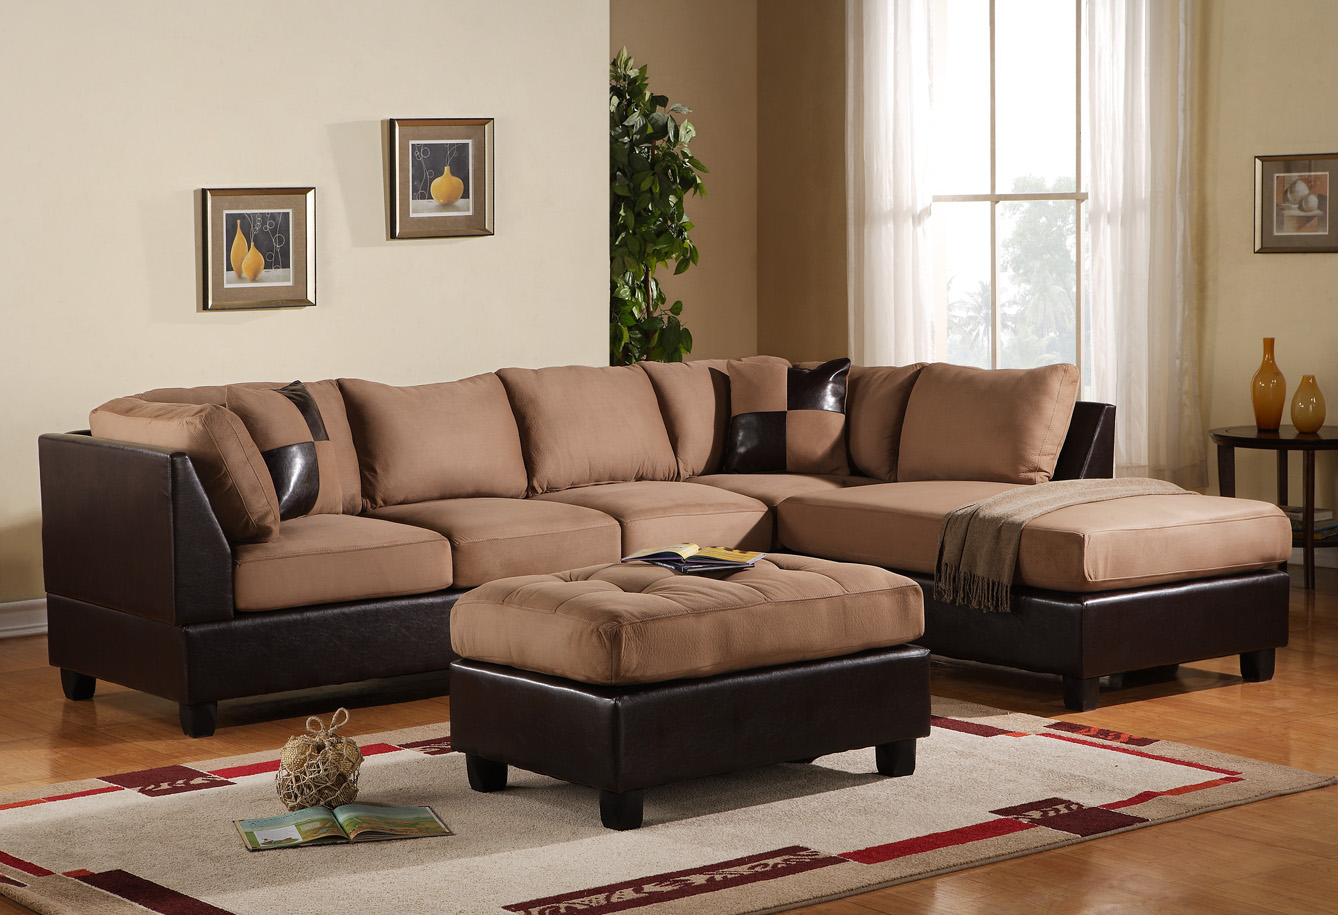 Enter To Win A 3 Piece Sofa Sectional Value 700 Time